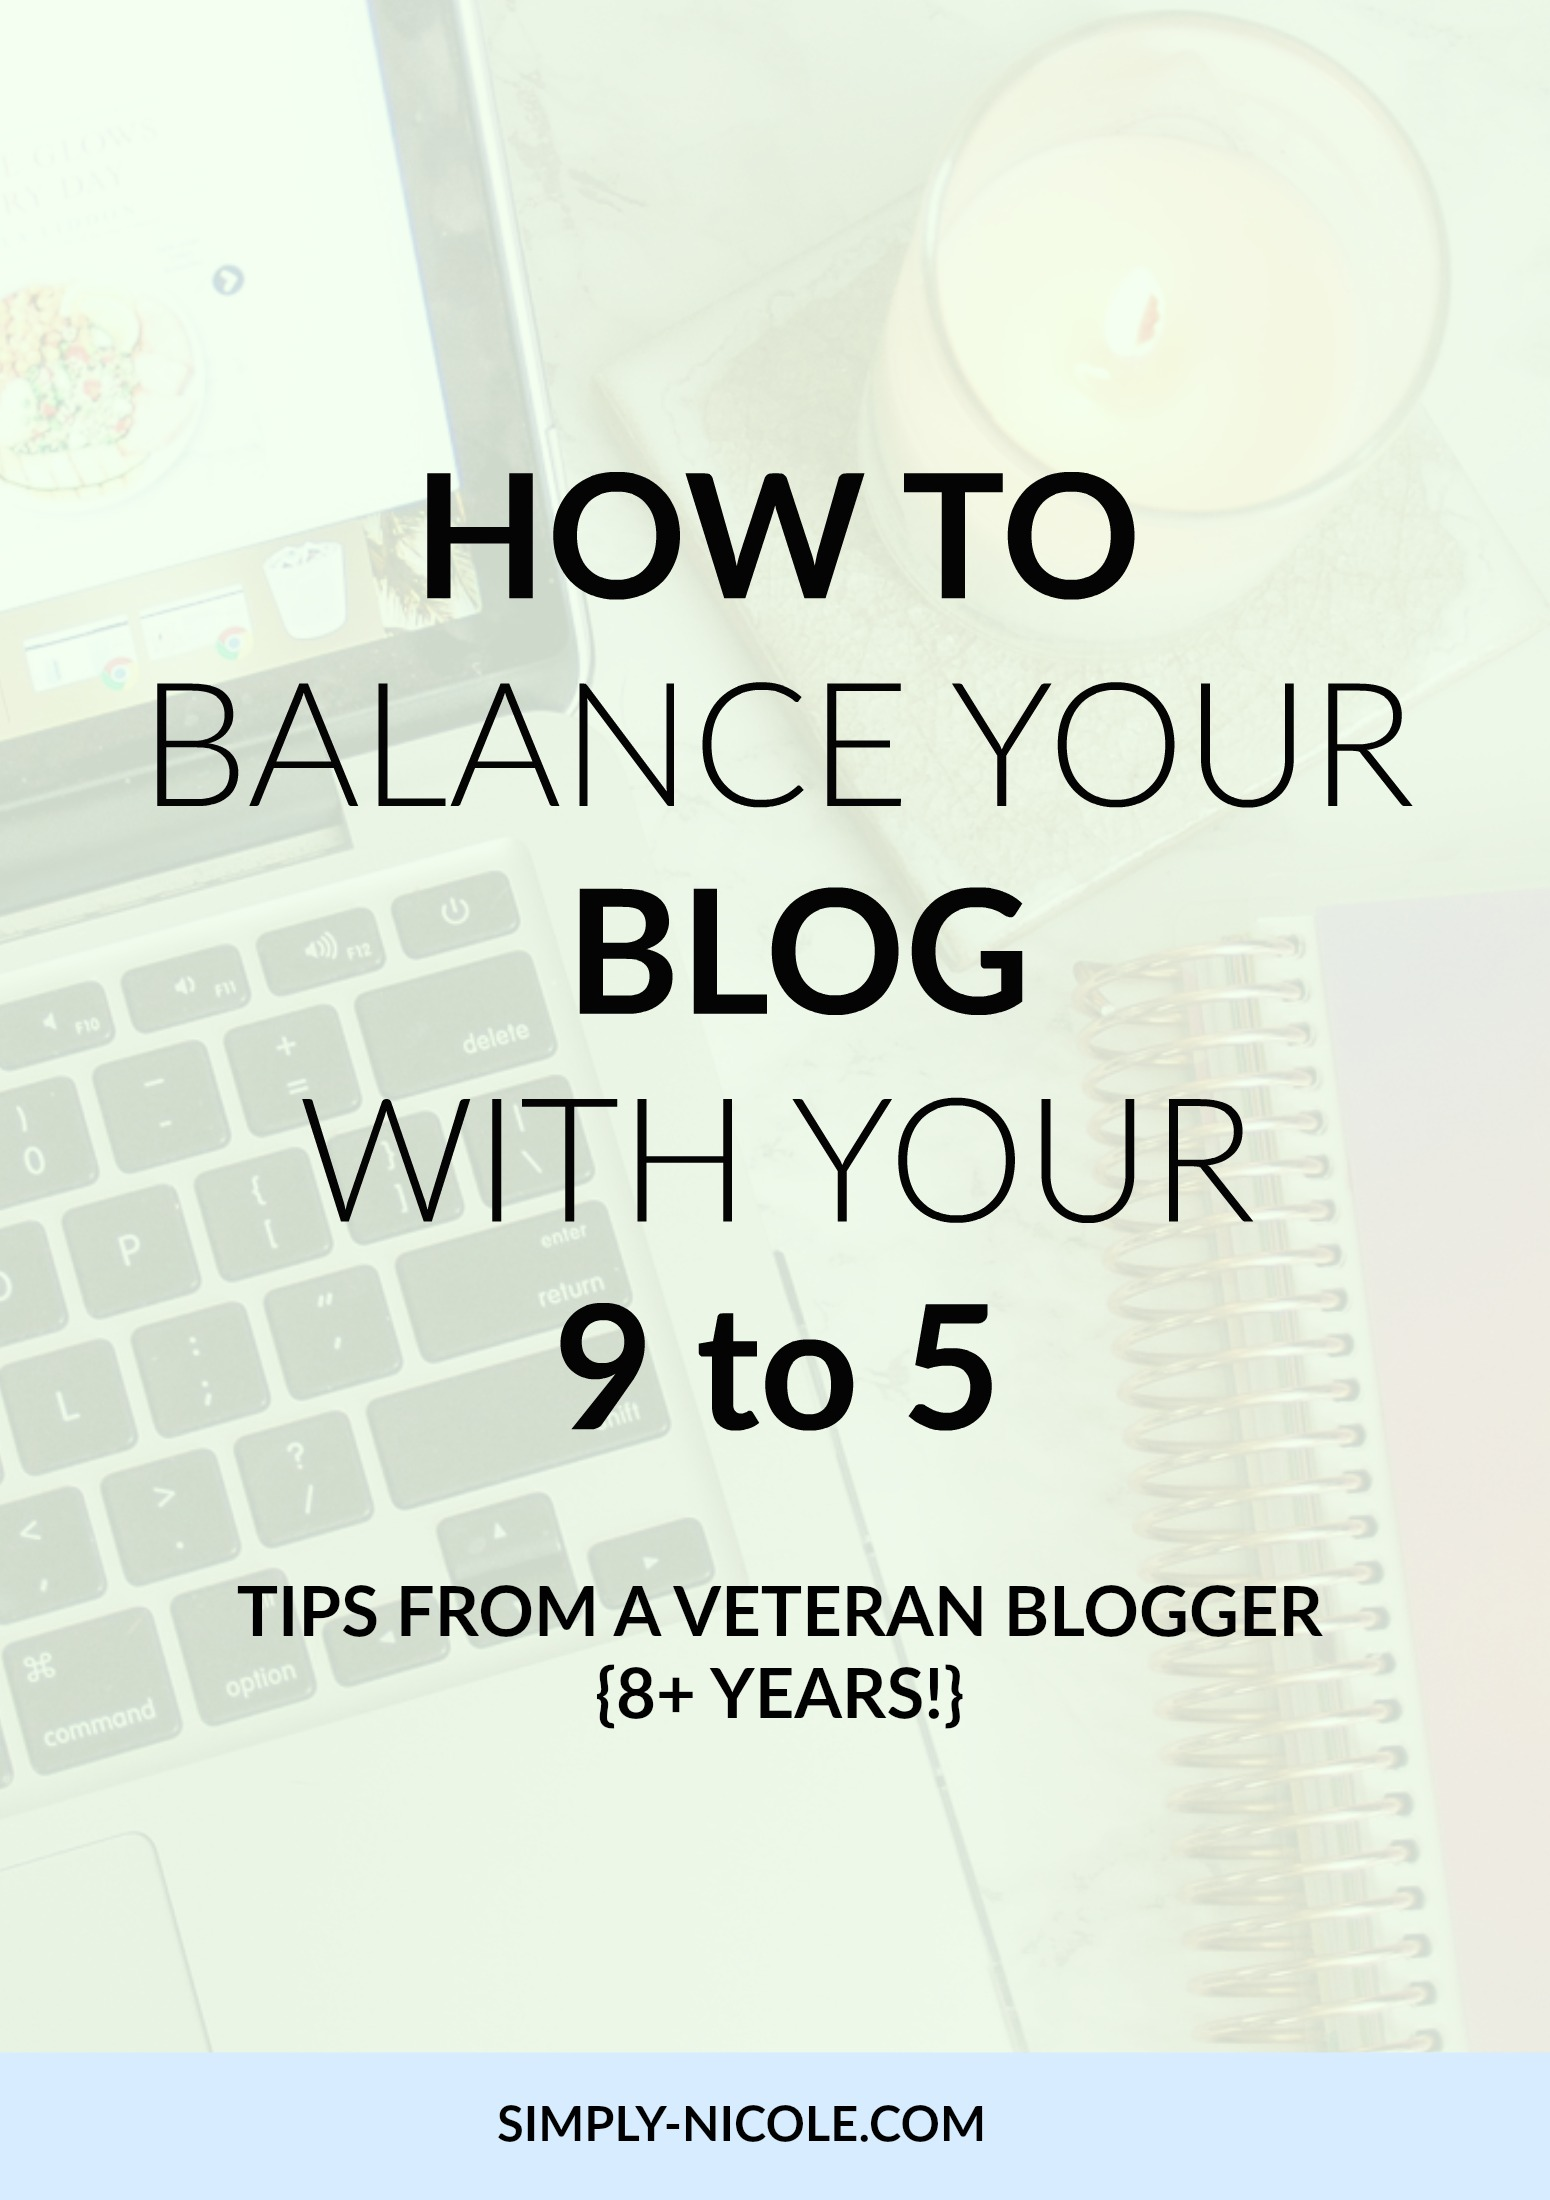 Tips for balancing your blog with your full time job